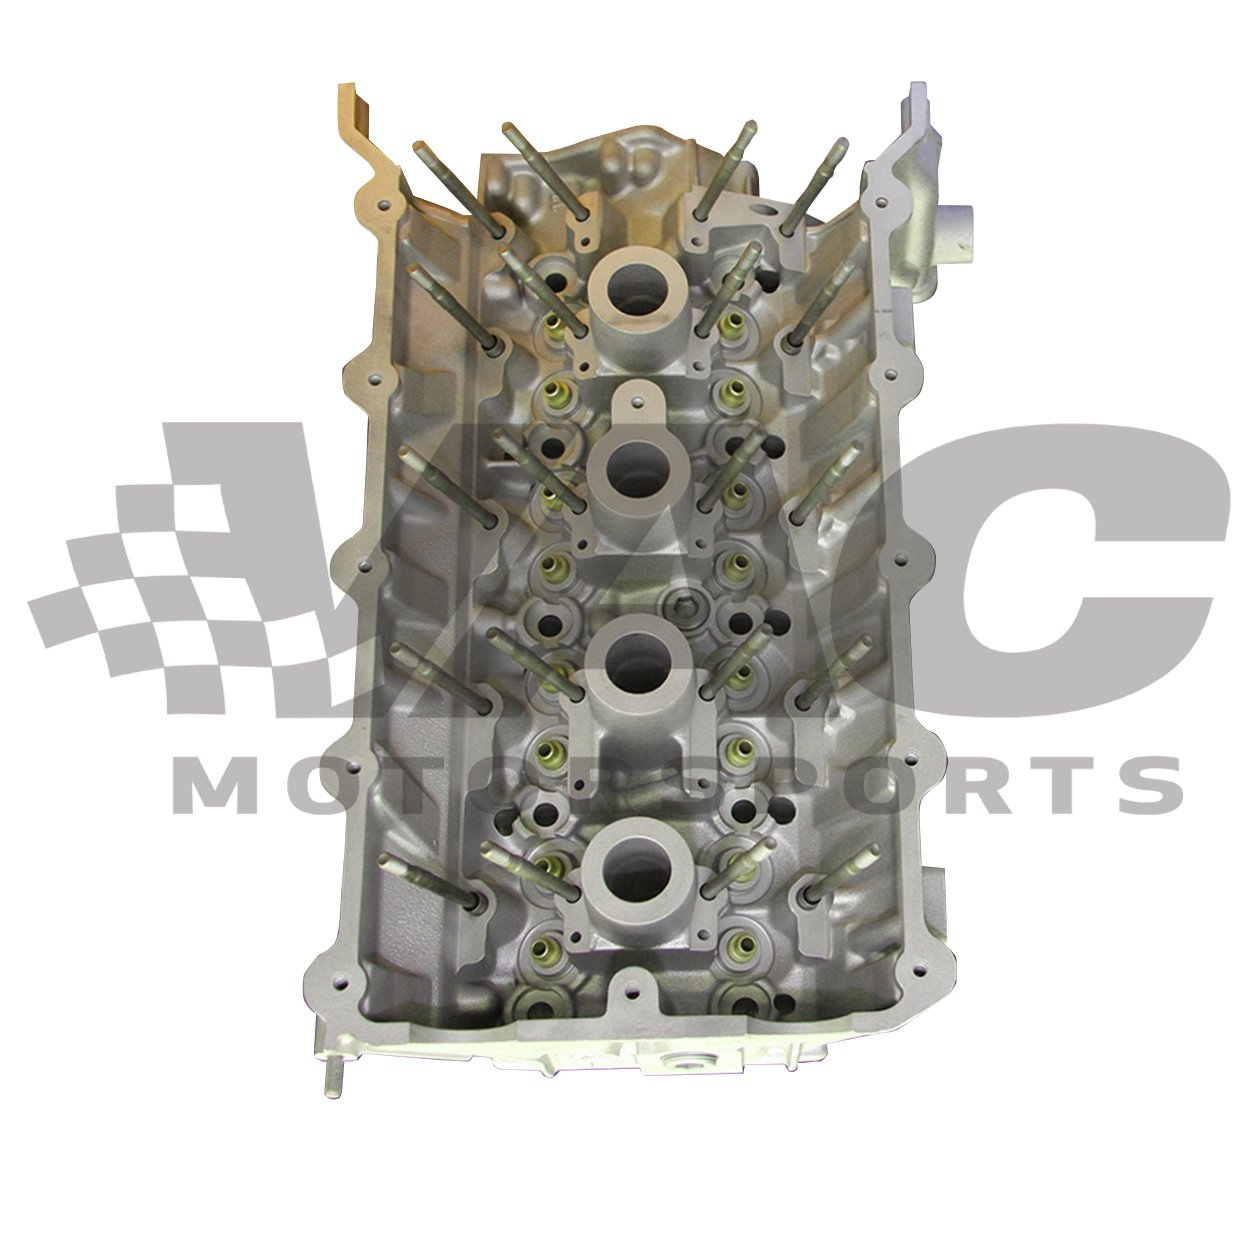 VAC - M42 Stage 2 Performance Cylinder Head MAIN